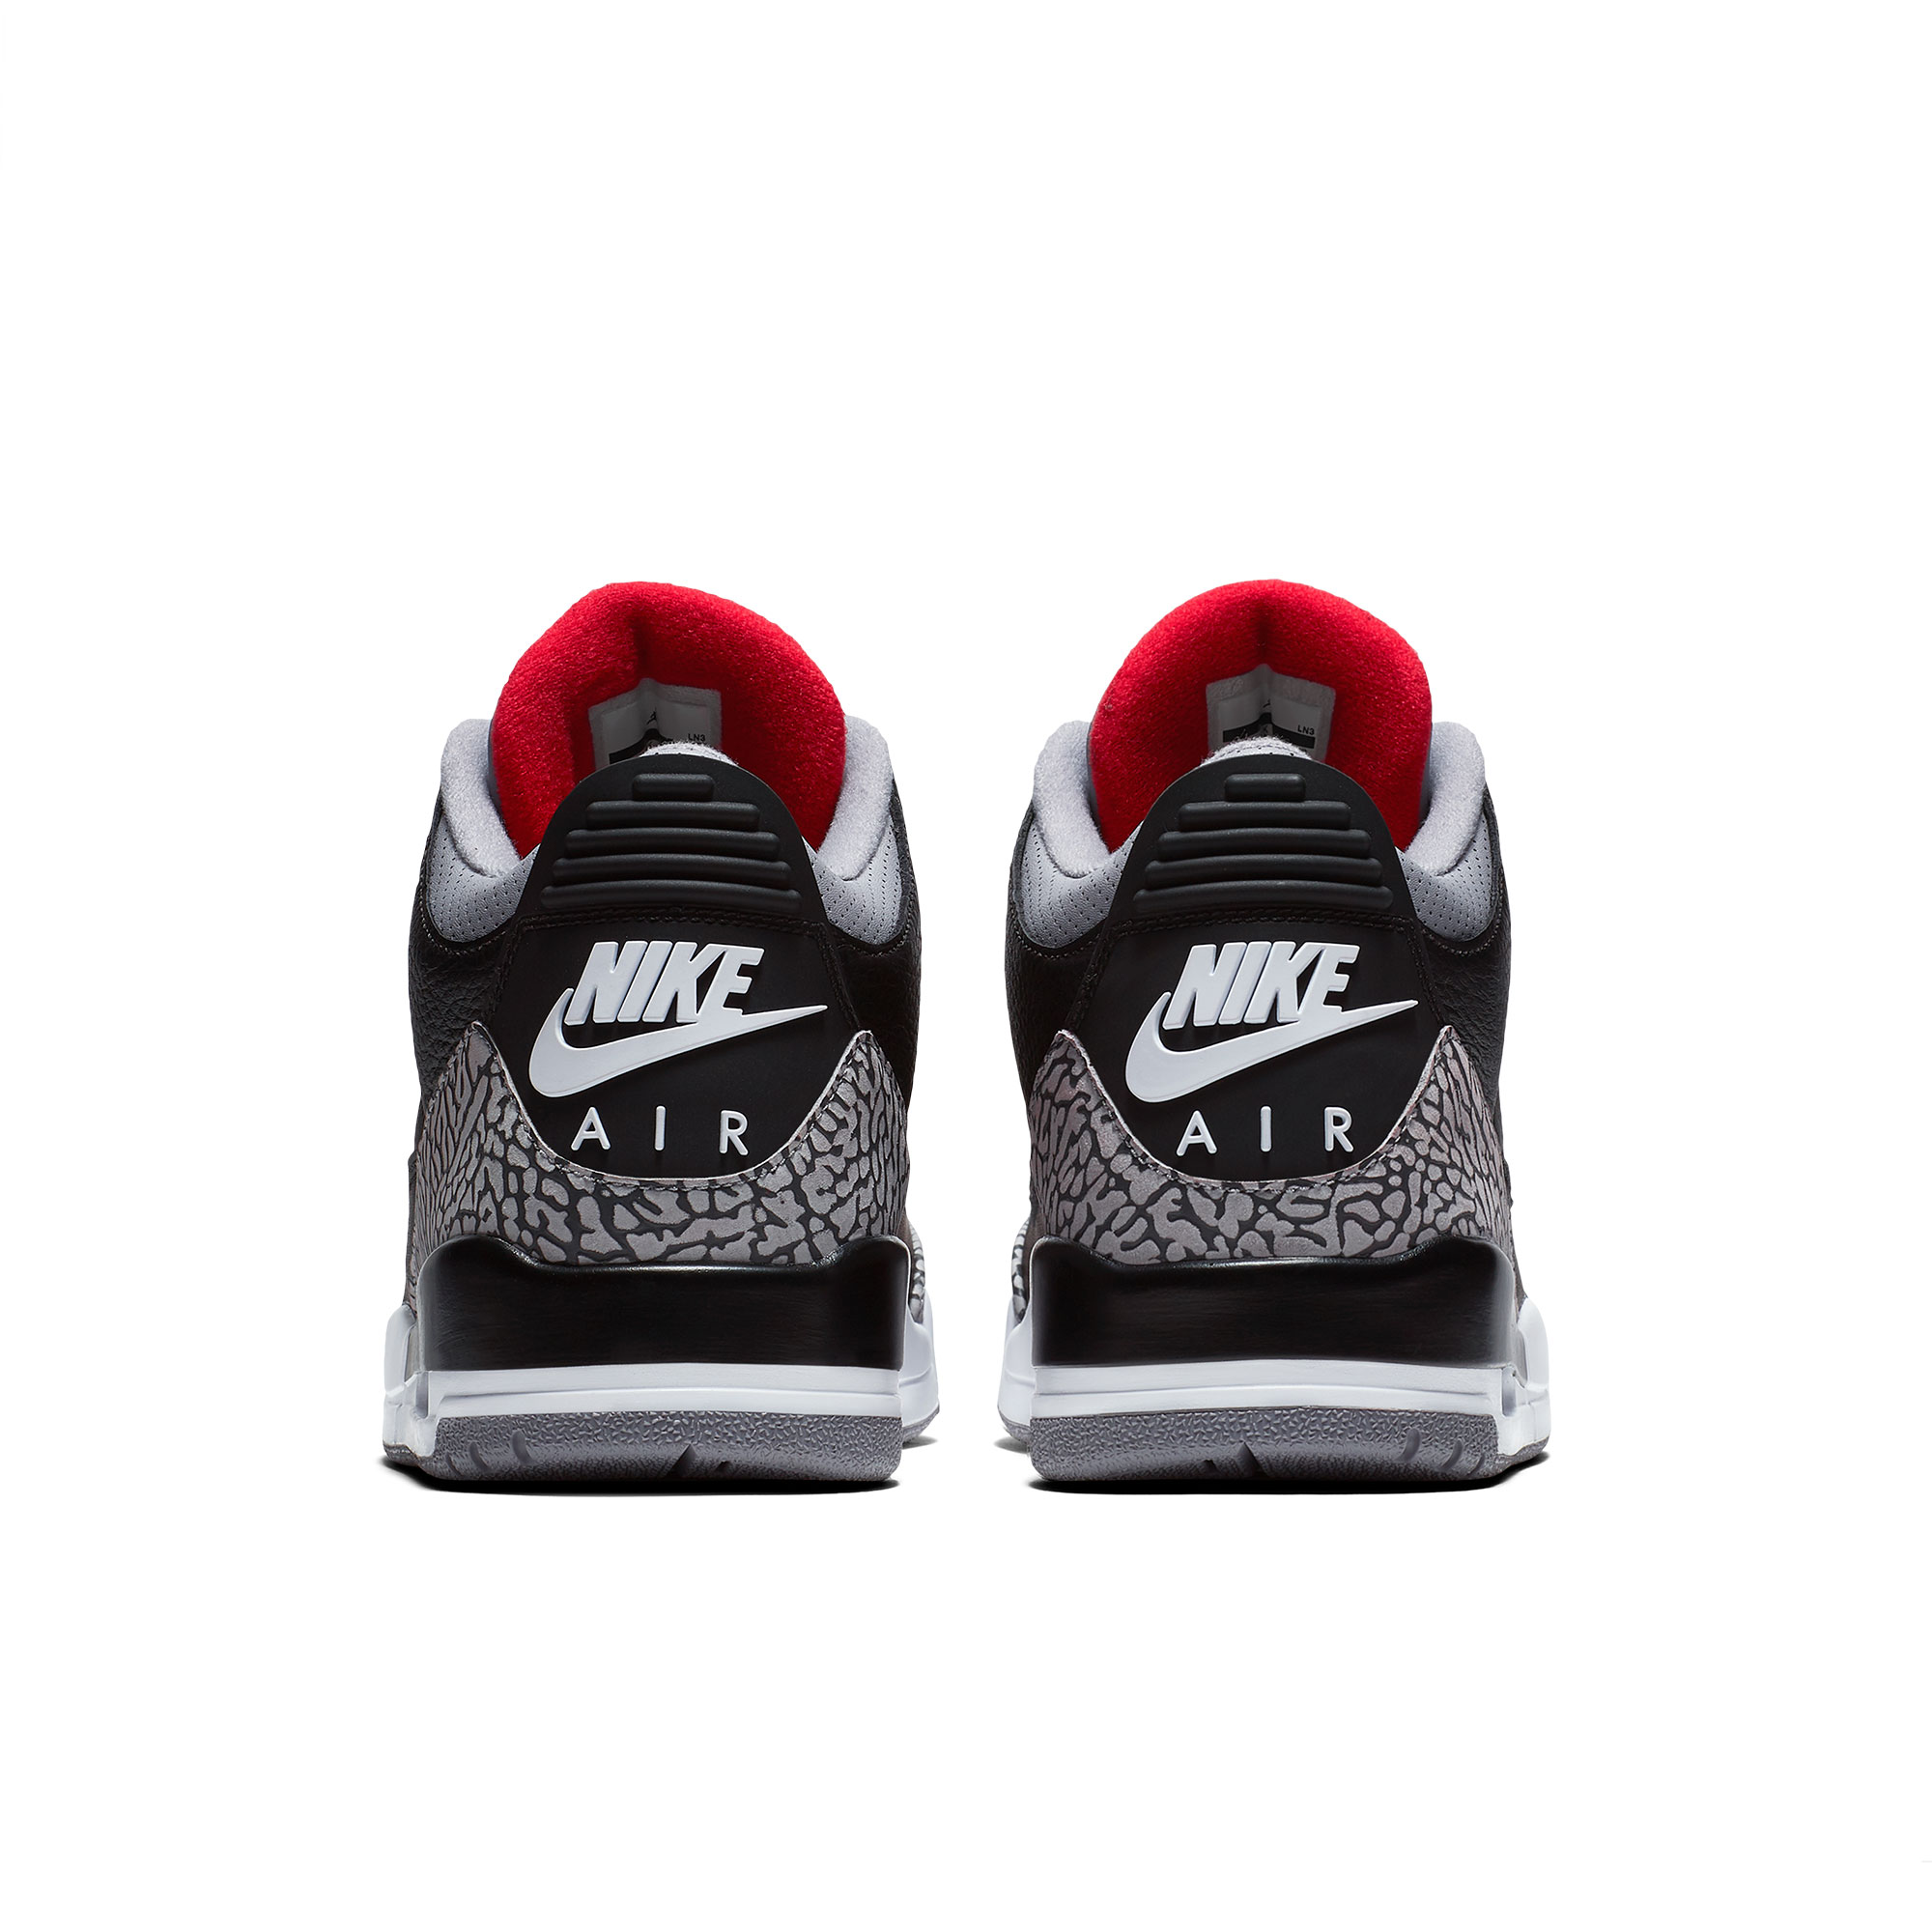 f0a1da1b682 Original New Arrival Authentic AIR JORDAN 3 RETRO OG mens basketball shoes  sneakers Comfortable Breathable-in Basketball Shoes from Sports &  Entertainment ...